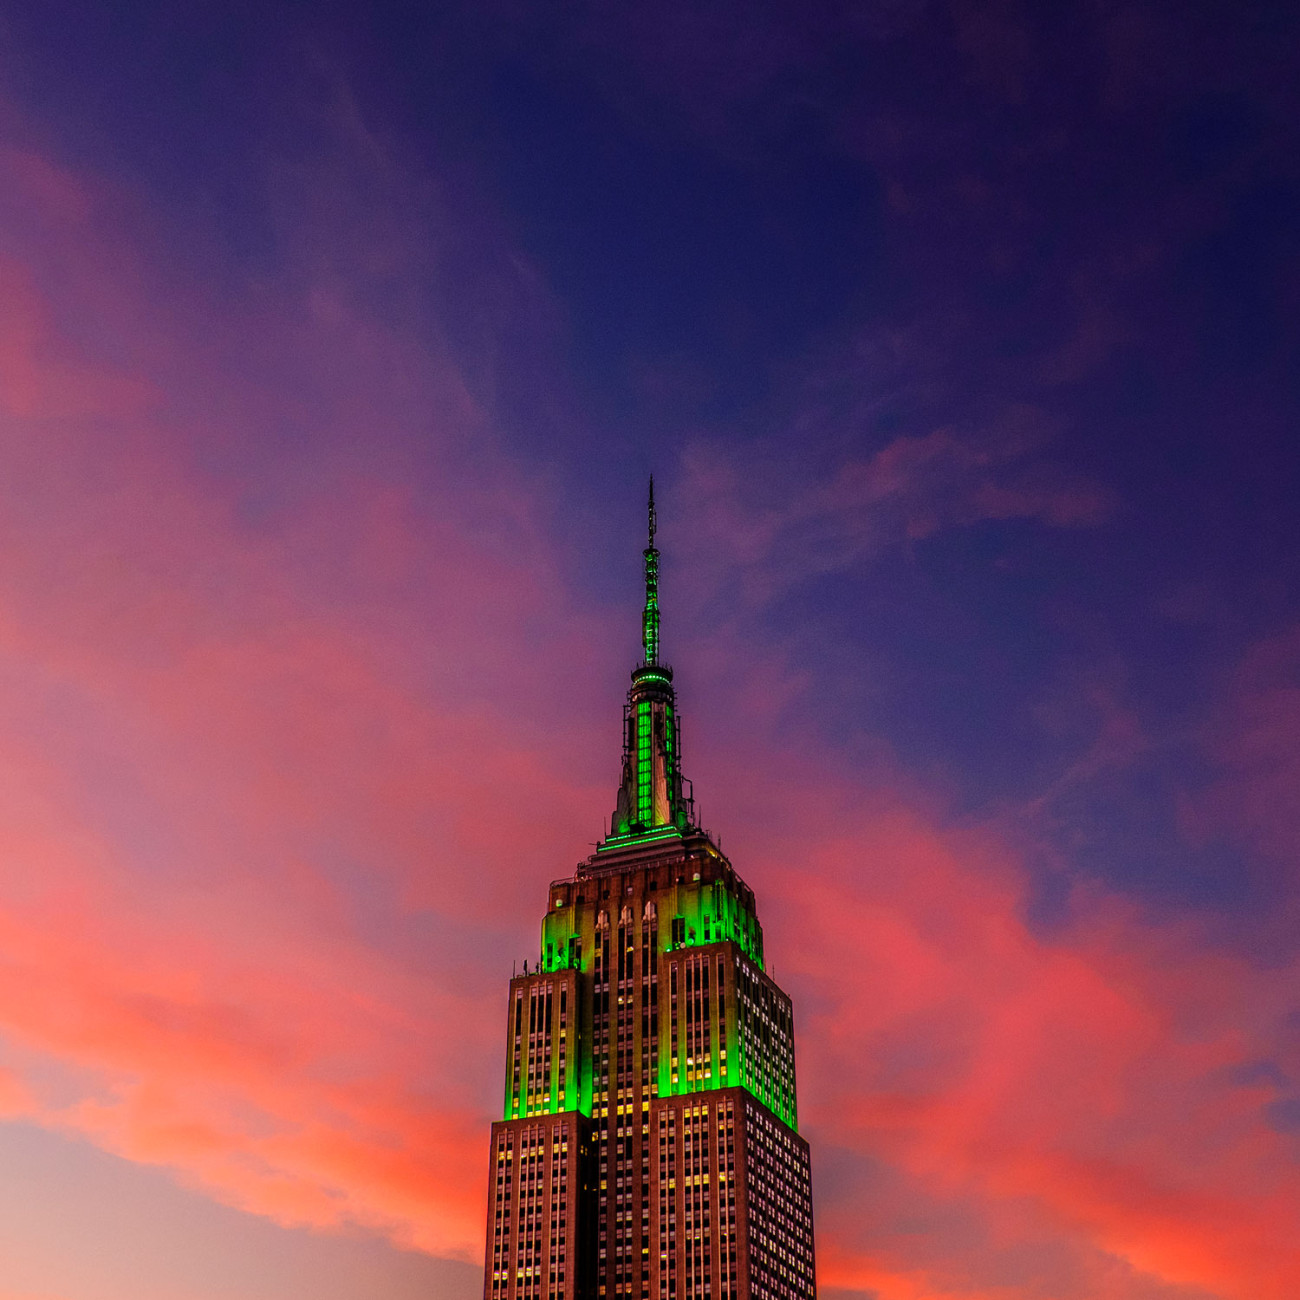 Empire State Building lit green at dusk, NY, 2015